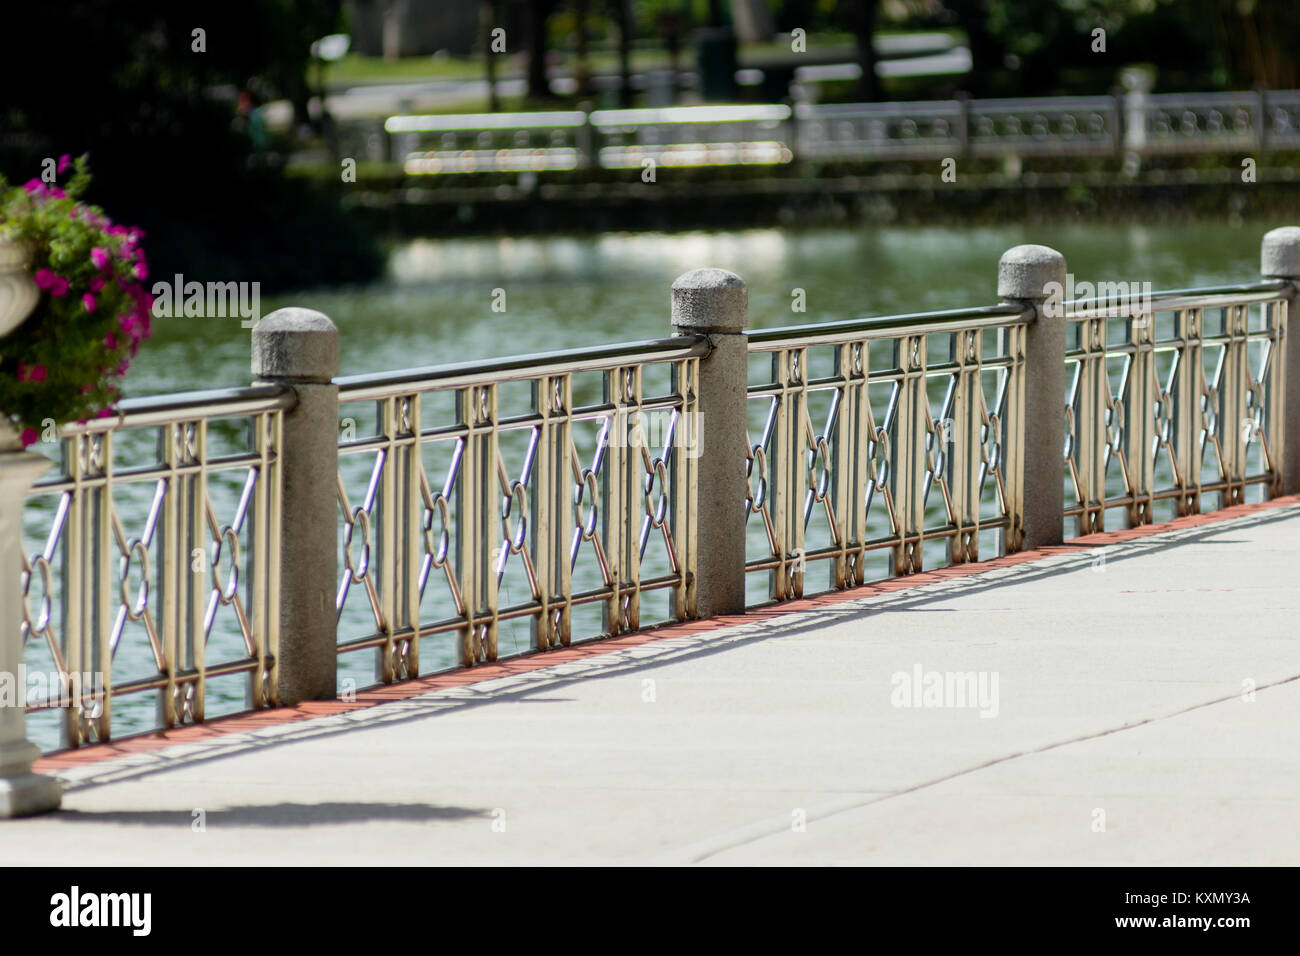 Public park Polished metal banister railings barrier to lake edge on sunny day. - Stock Image